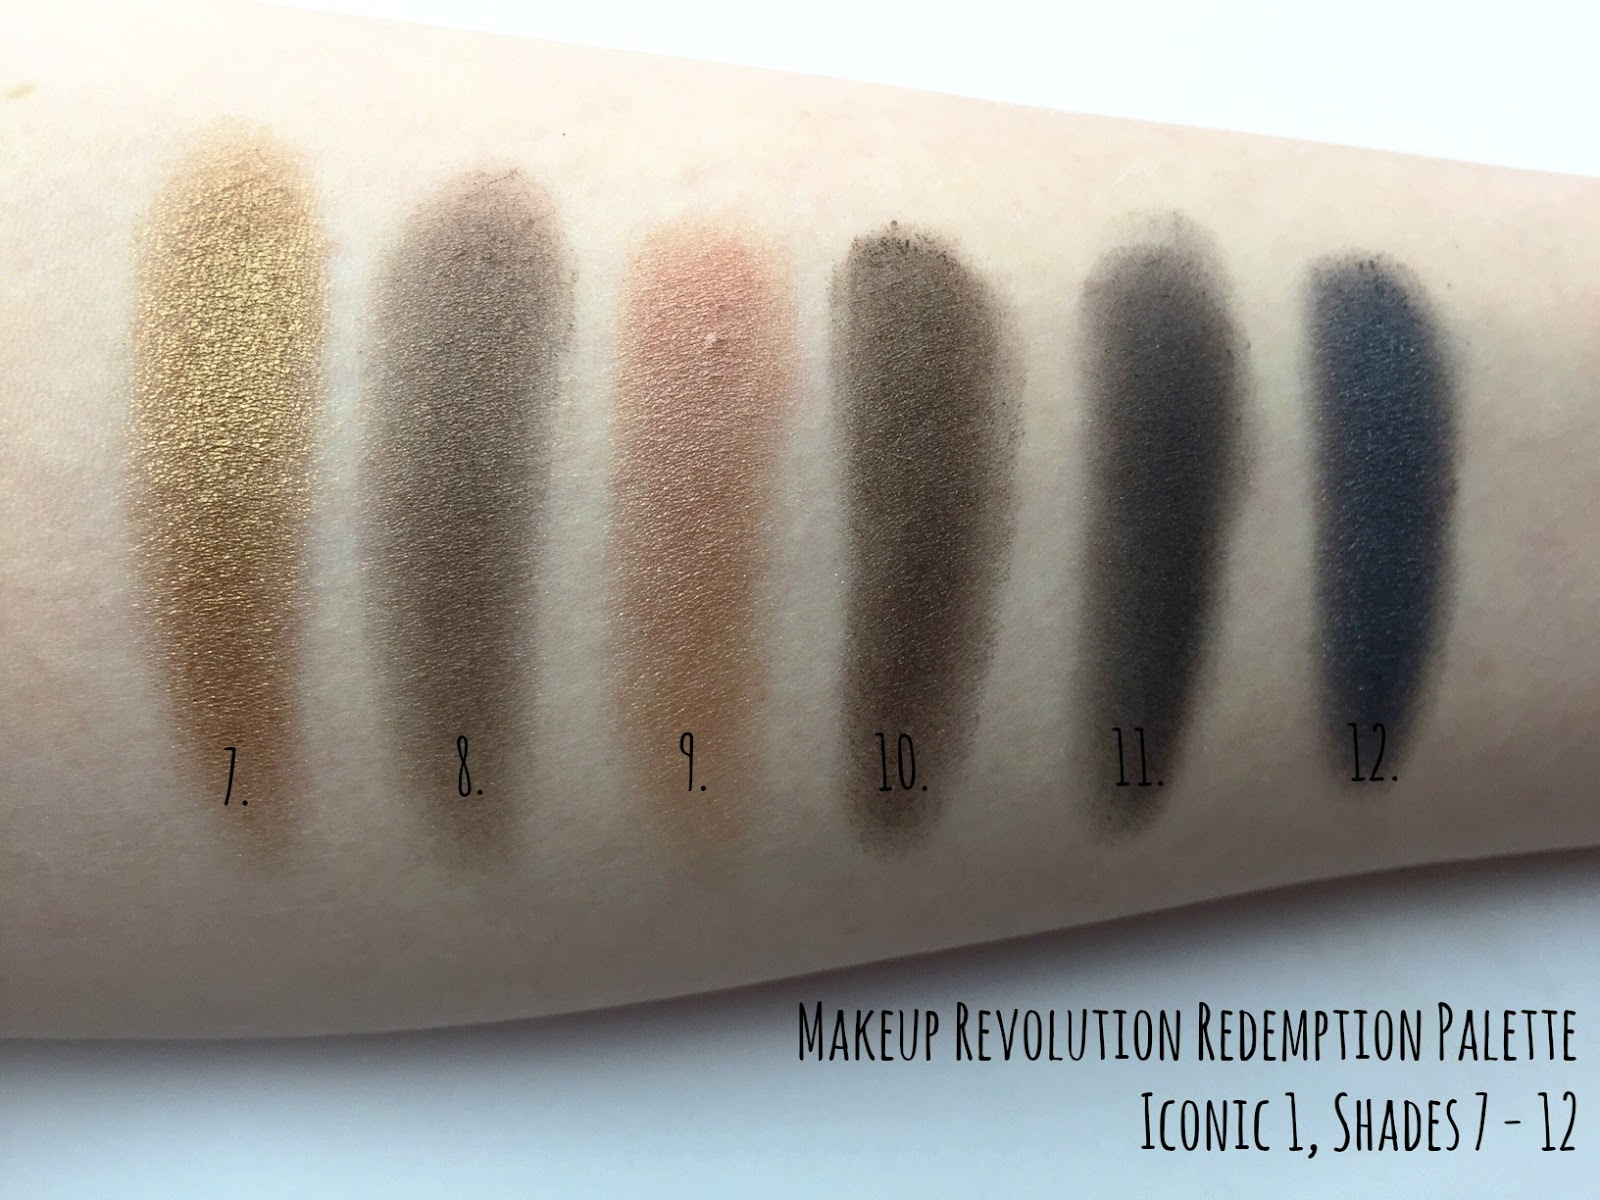 Makeup Revolution Redemption Palette Iconic 1 Swatch